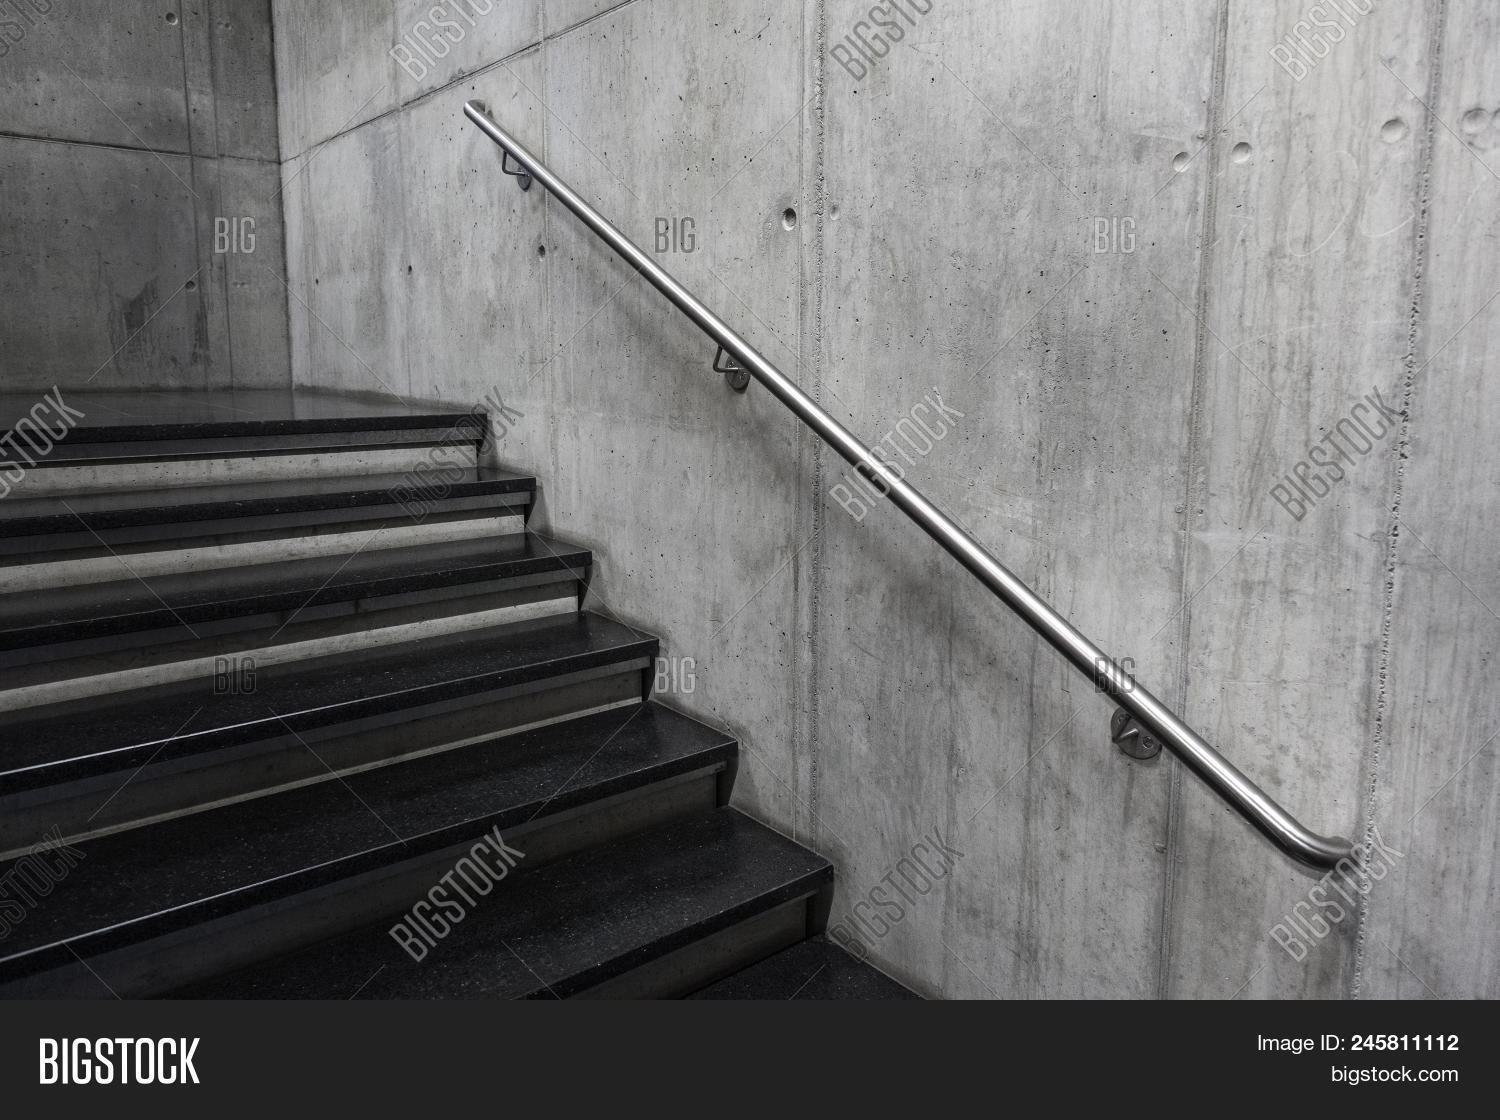 Modern Staircase Image Photo Free Trial Bigstock | Building A Handrail For Concrete Stairs | Deck Railing | Deck | Steel Handrail | Porch | Outdoor Stair